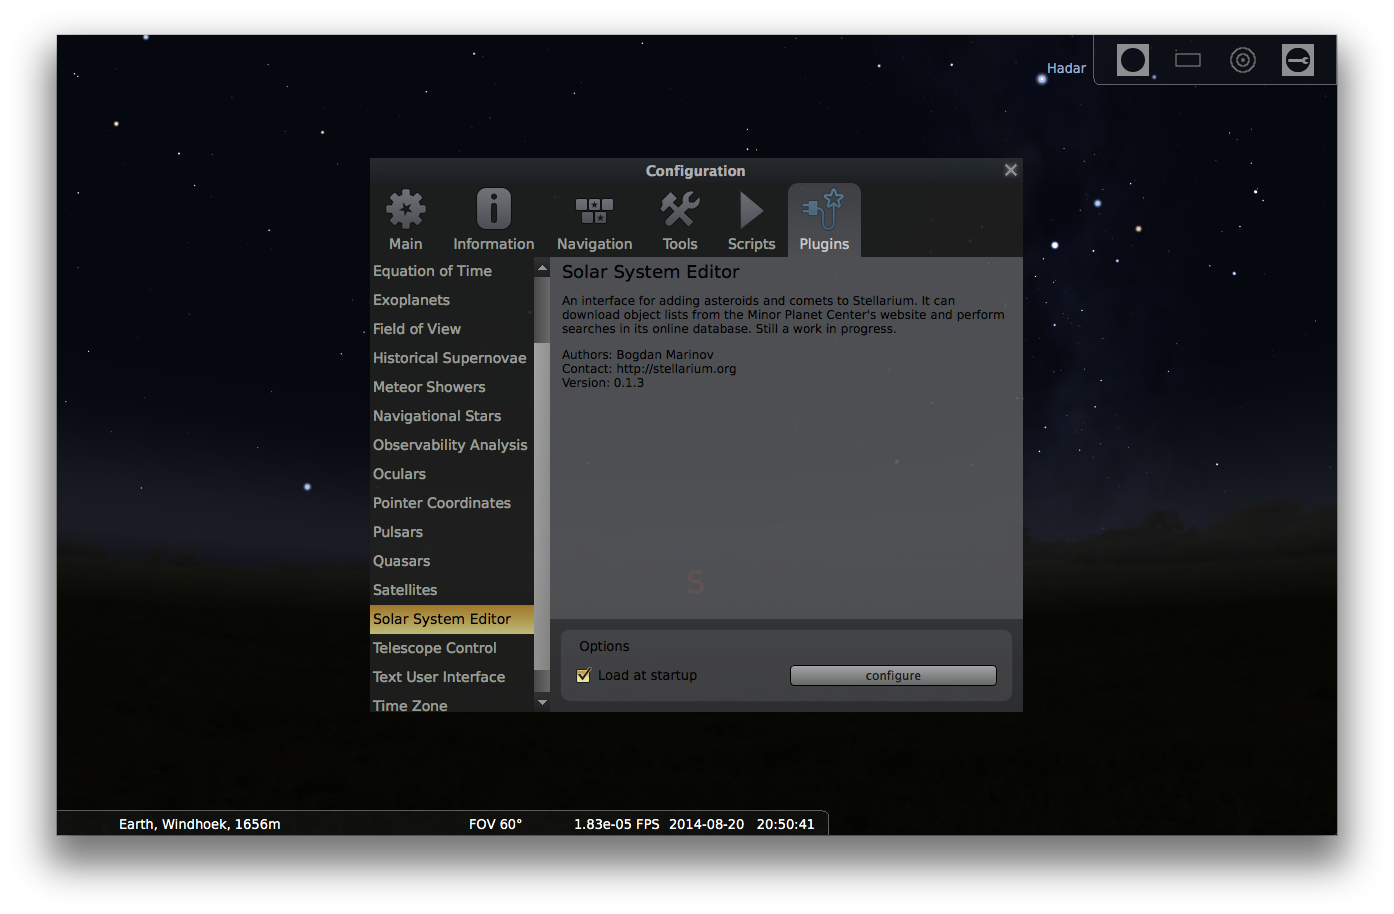 Adding comets to Stellarium - Step 2